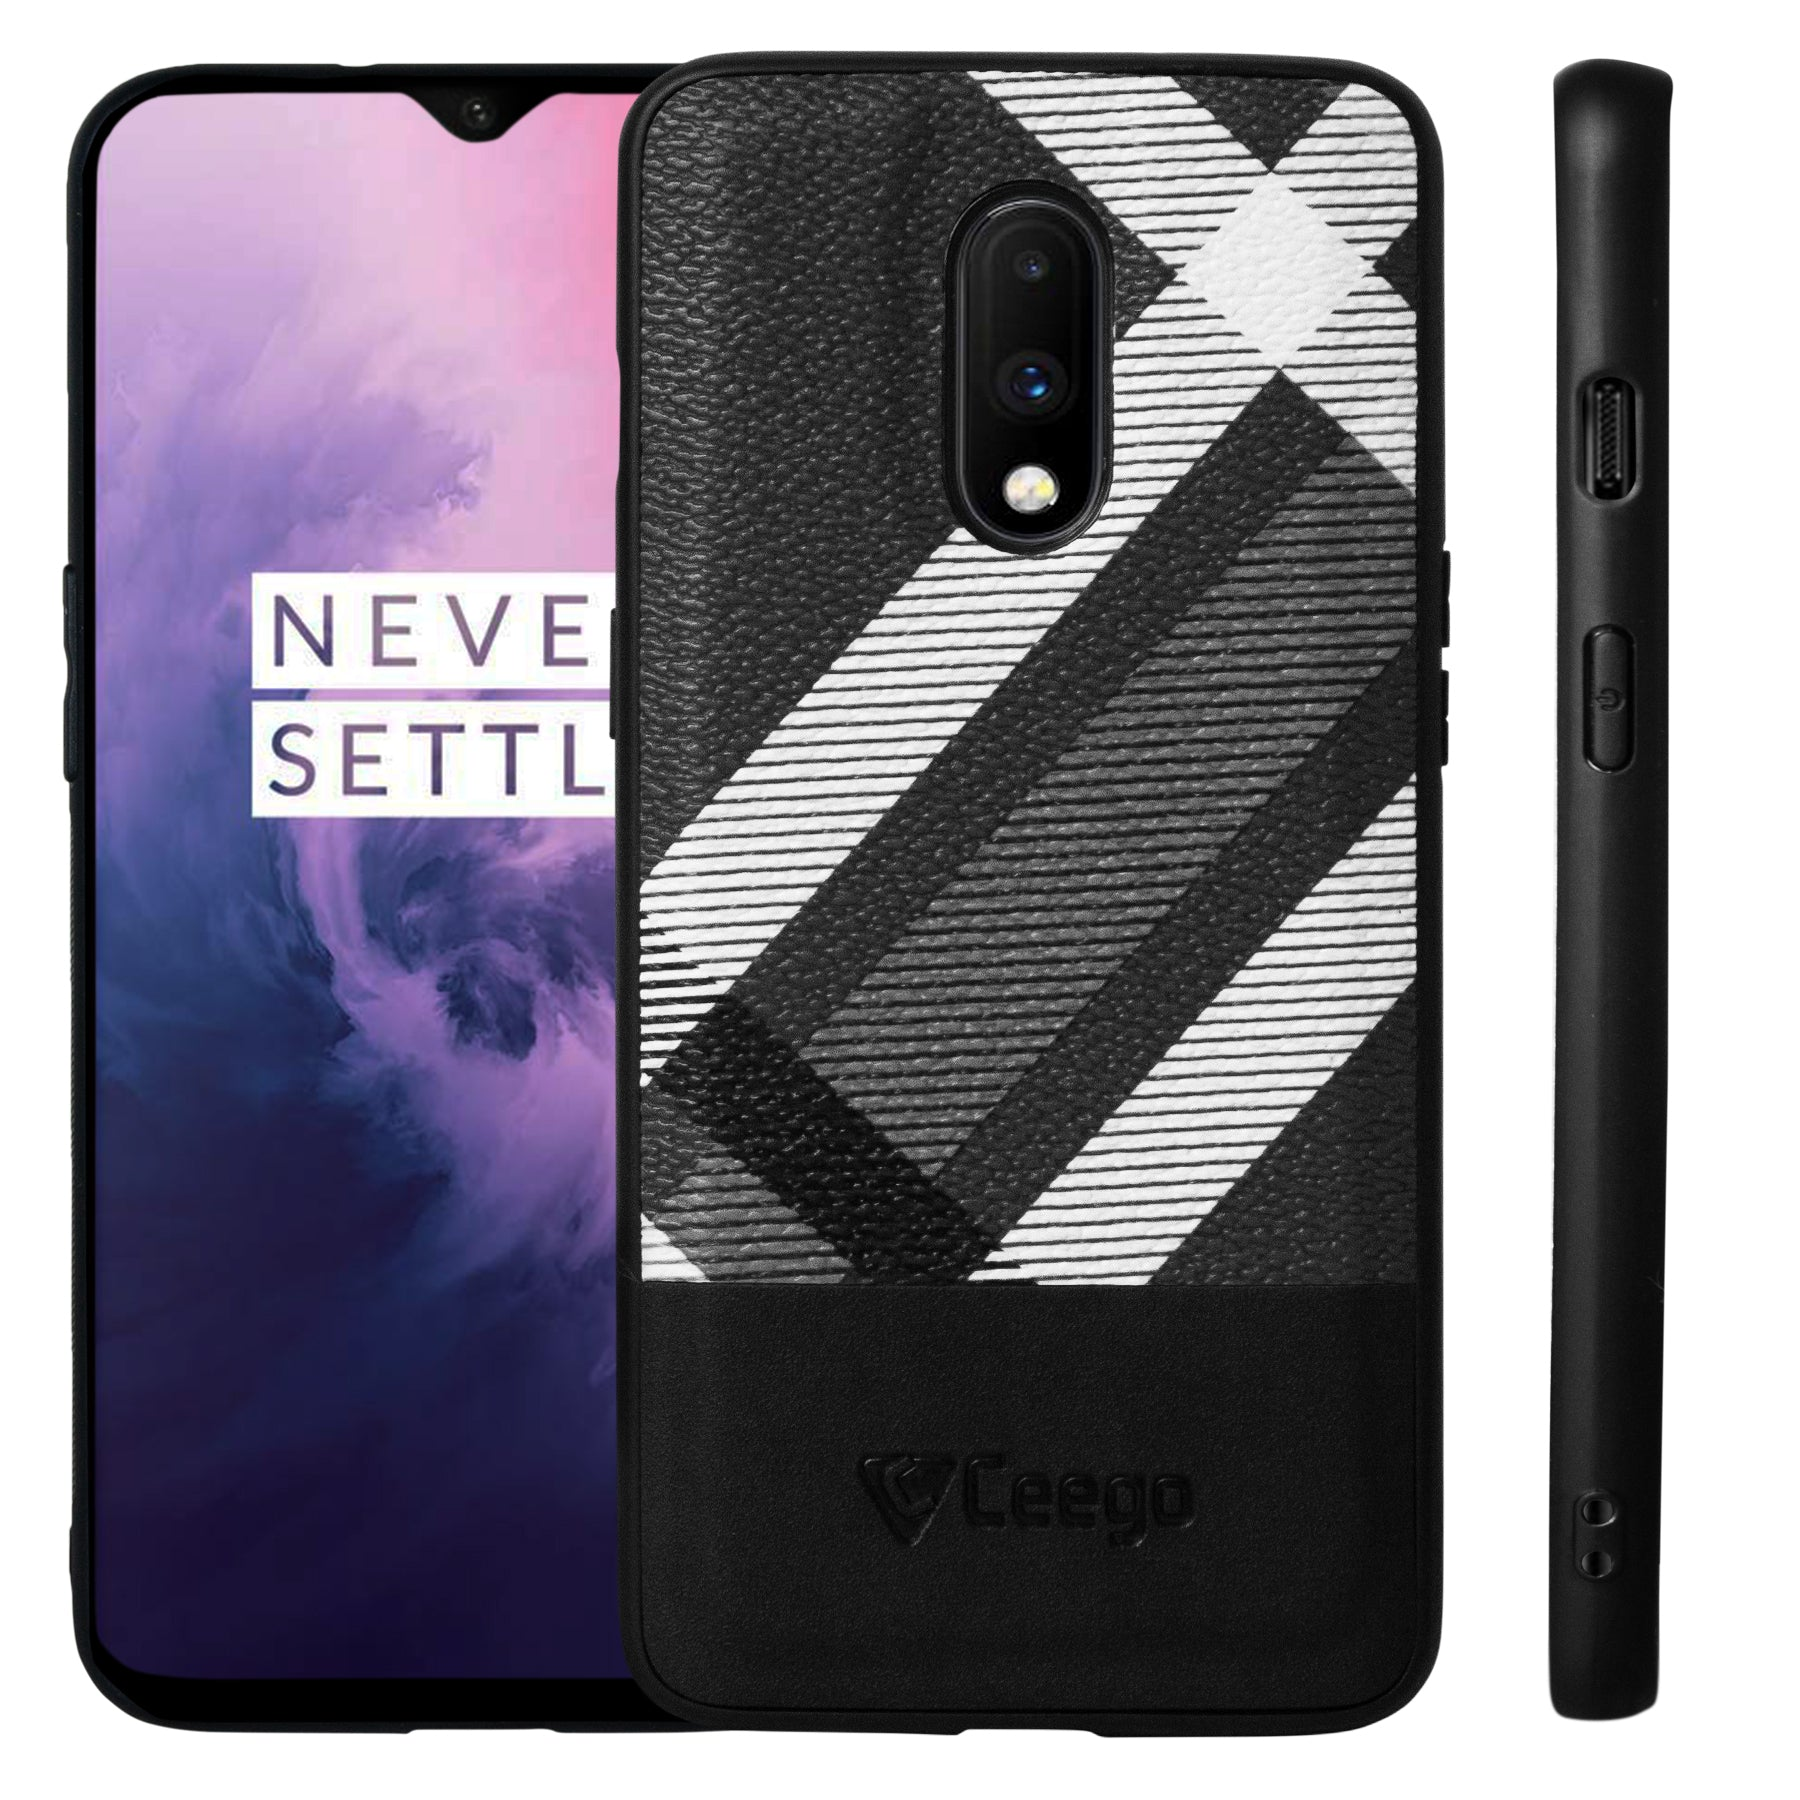 Ceego Elita Ultra Slim Back Case for OnePlus 7 (Abstract Pattern - Black)